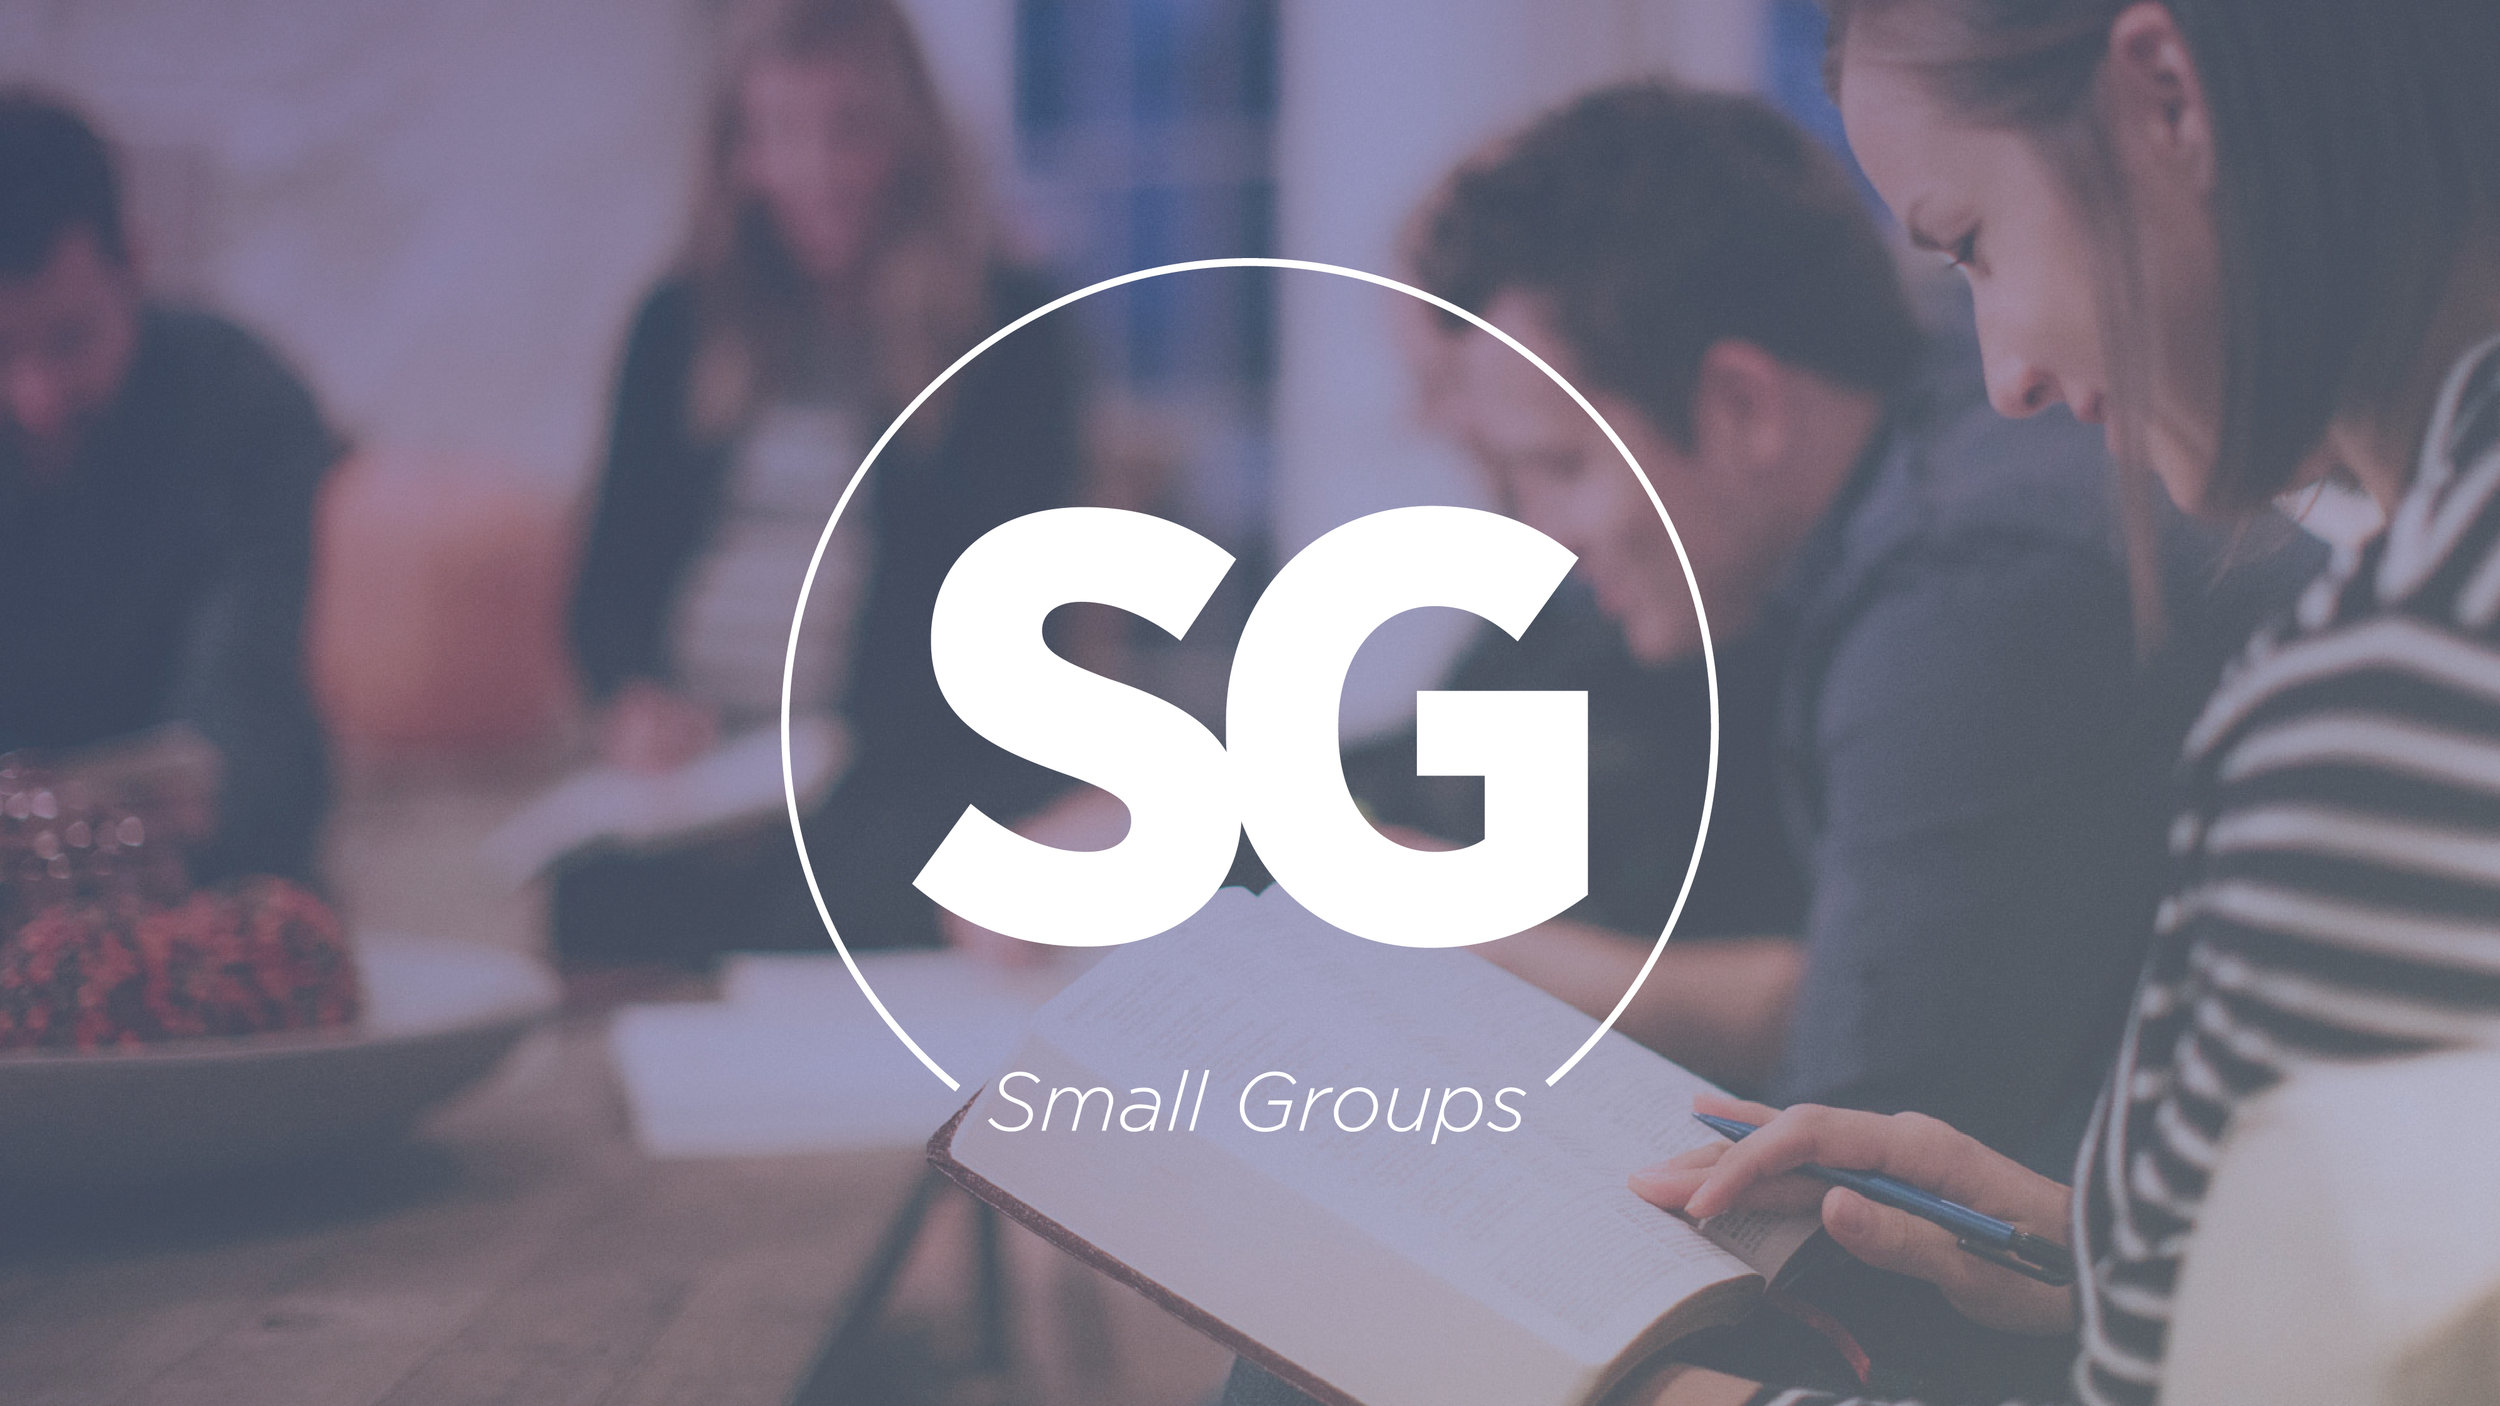 Small Groups Graphic-01.jpg